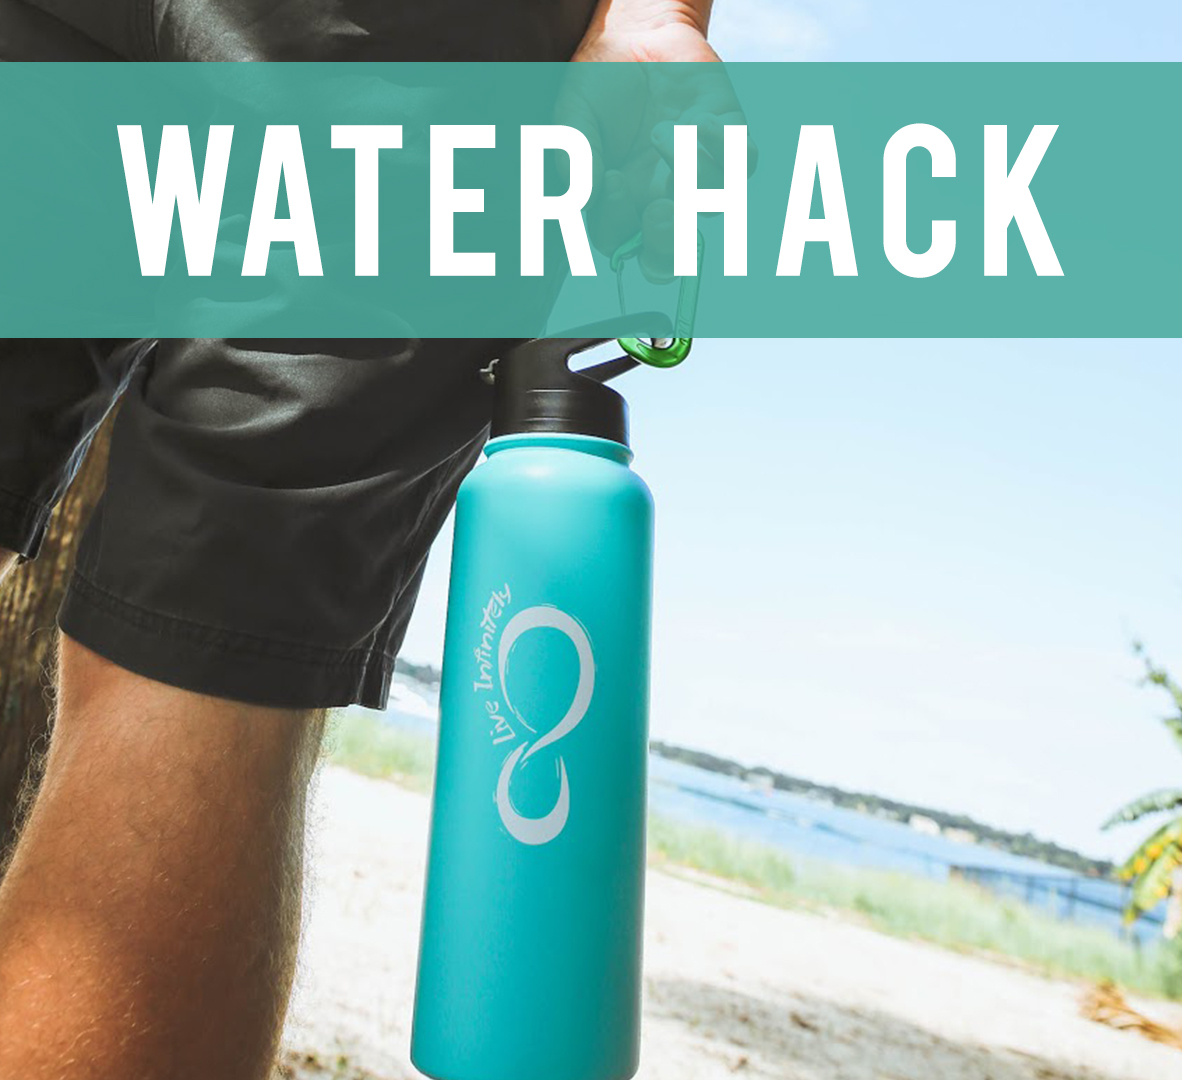 Beach Water Hack